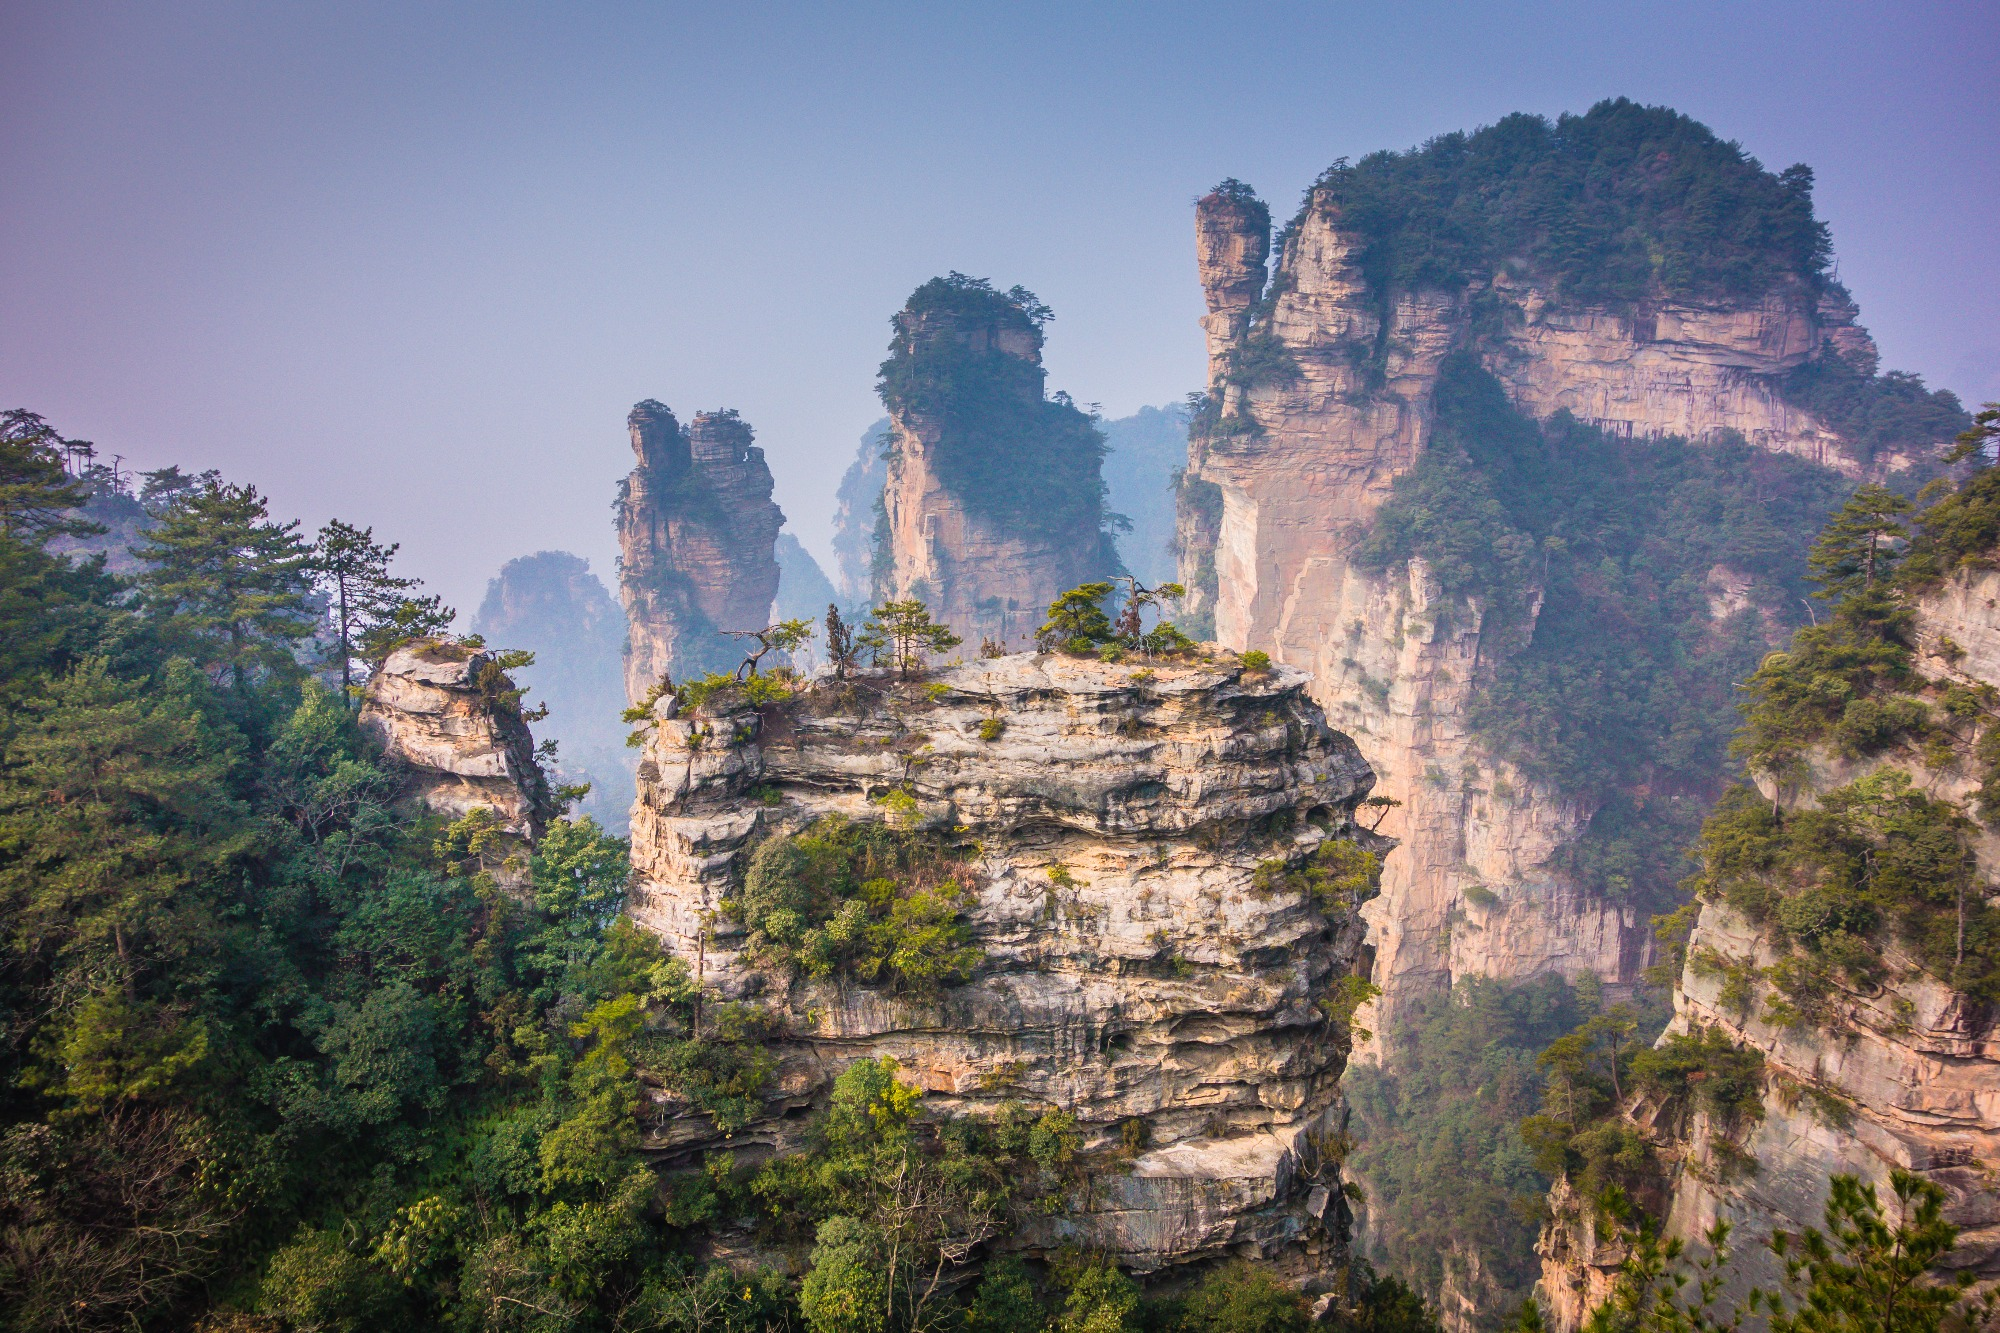 2 Tianzi Mountains in China